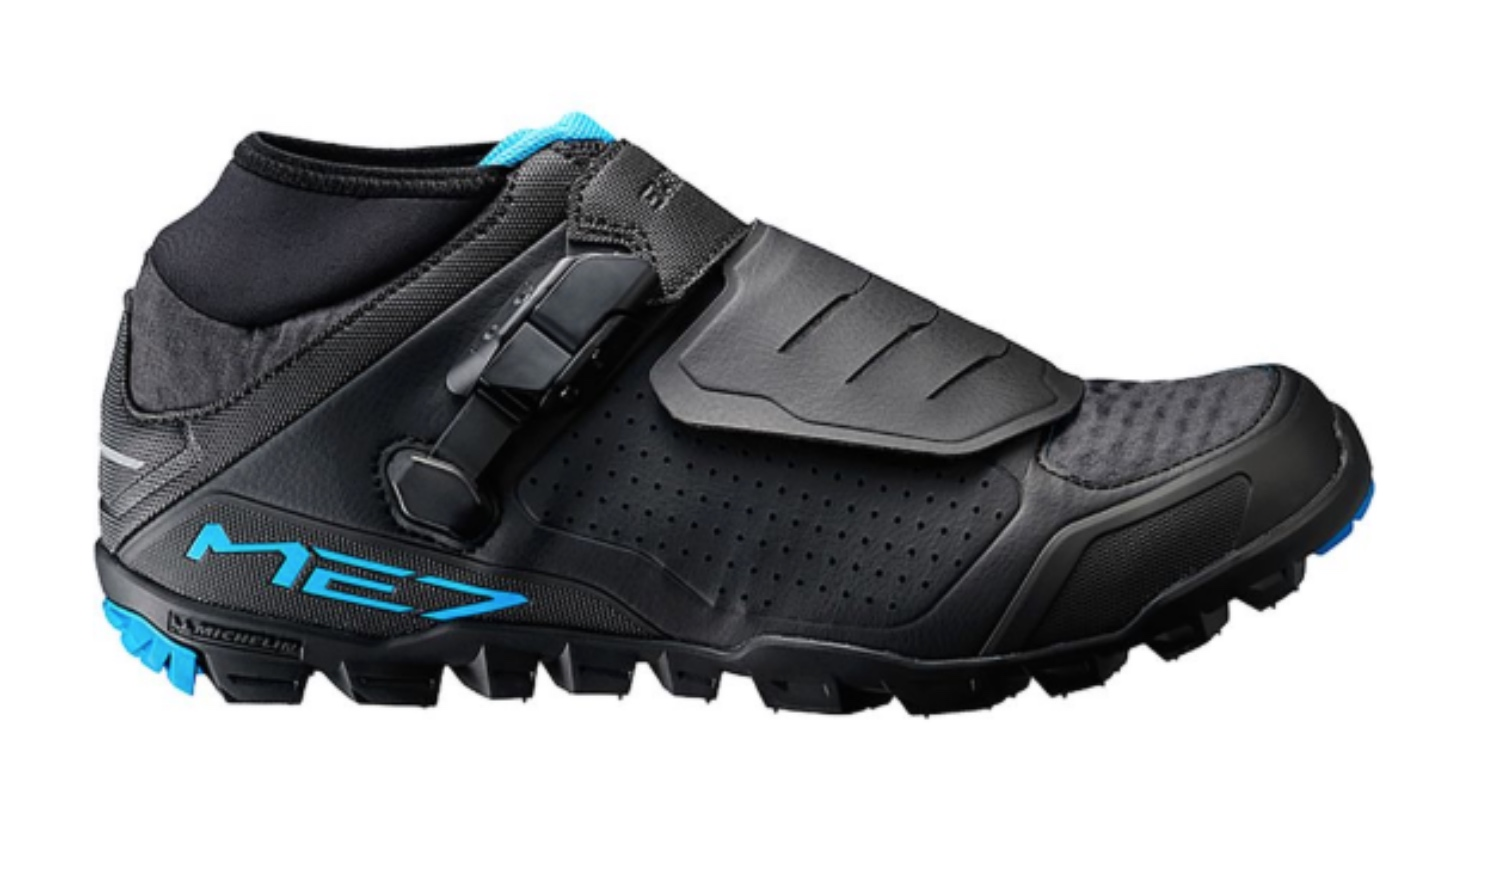 Clipless Mountain Bike Shoes Review